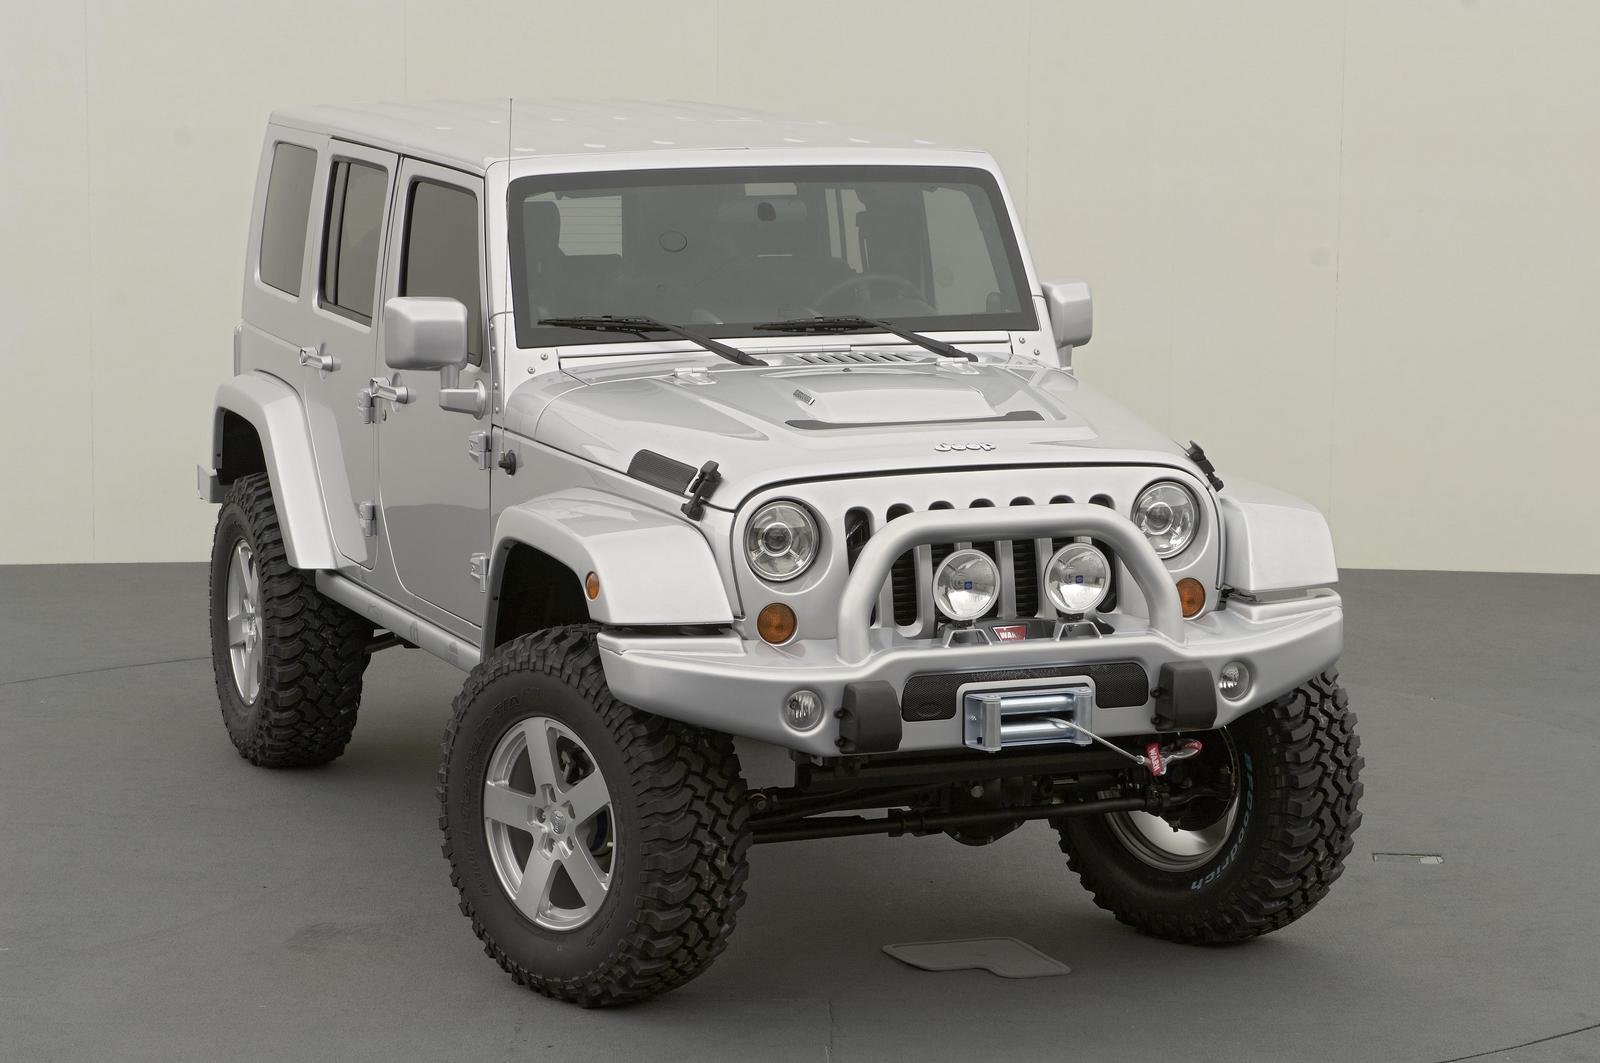 2007 jeep wrangler unlimited rubicon review top speed. Black Bedroom Furniture Sets. Home Design Ideas